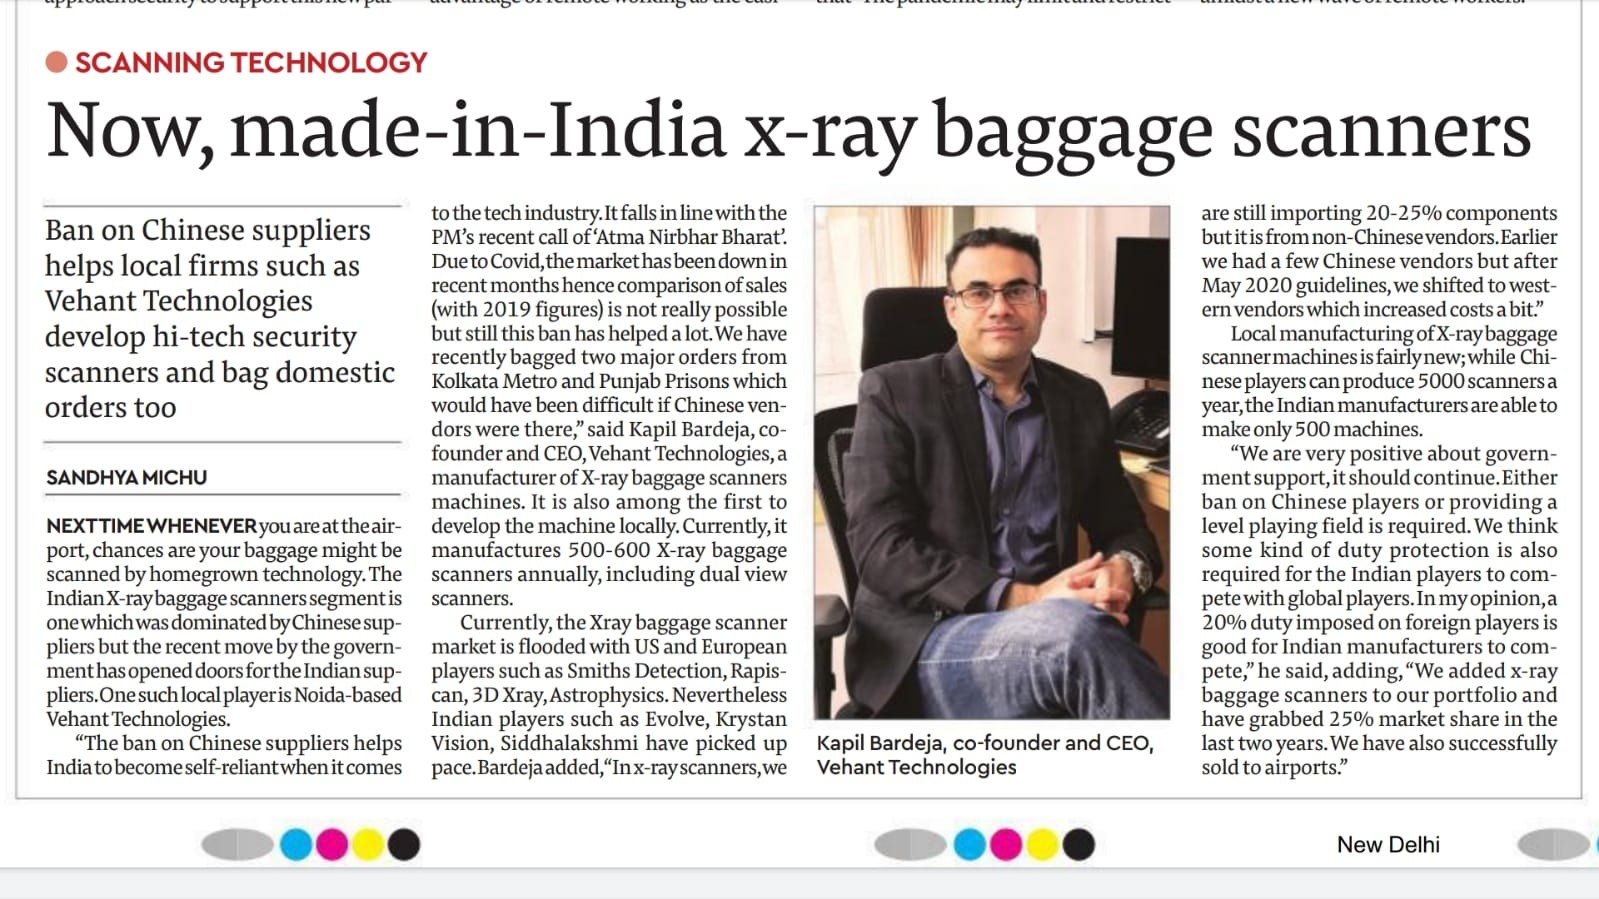 The Financial Express interviews Kapil Bardeja, Co-Founder & CEO, Vehant technologies who speaks about our homegrown technology - Advanced X-Ray baggage scanners. Also, how the ban on Chinese suppliers has helped the domestic firms.